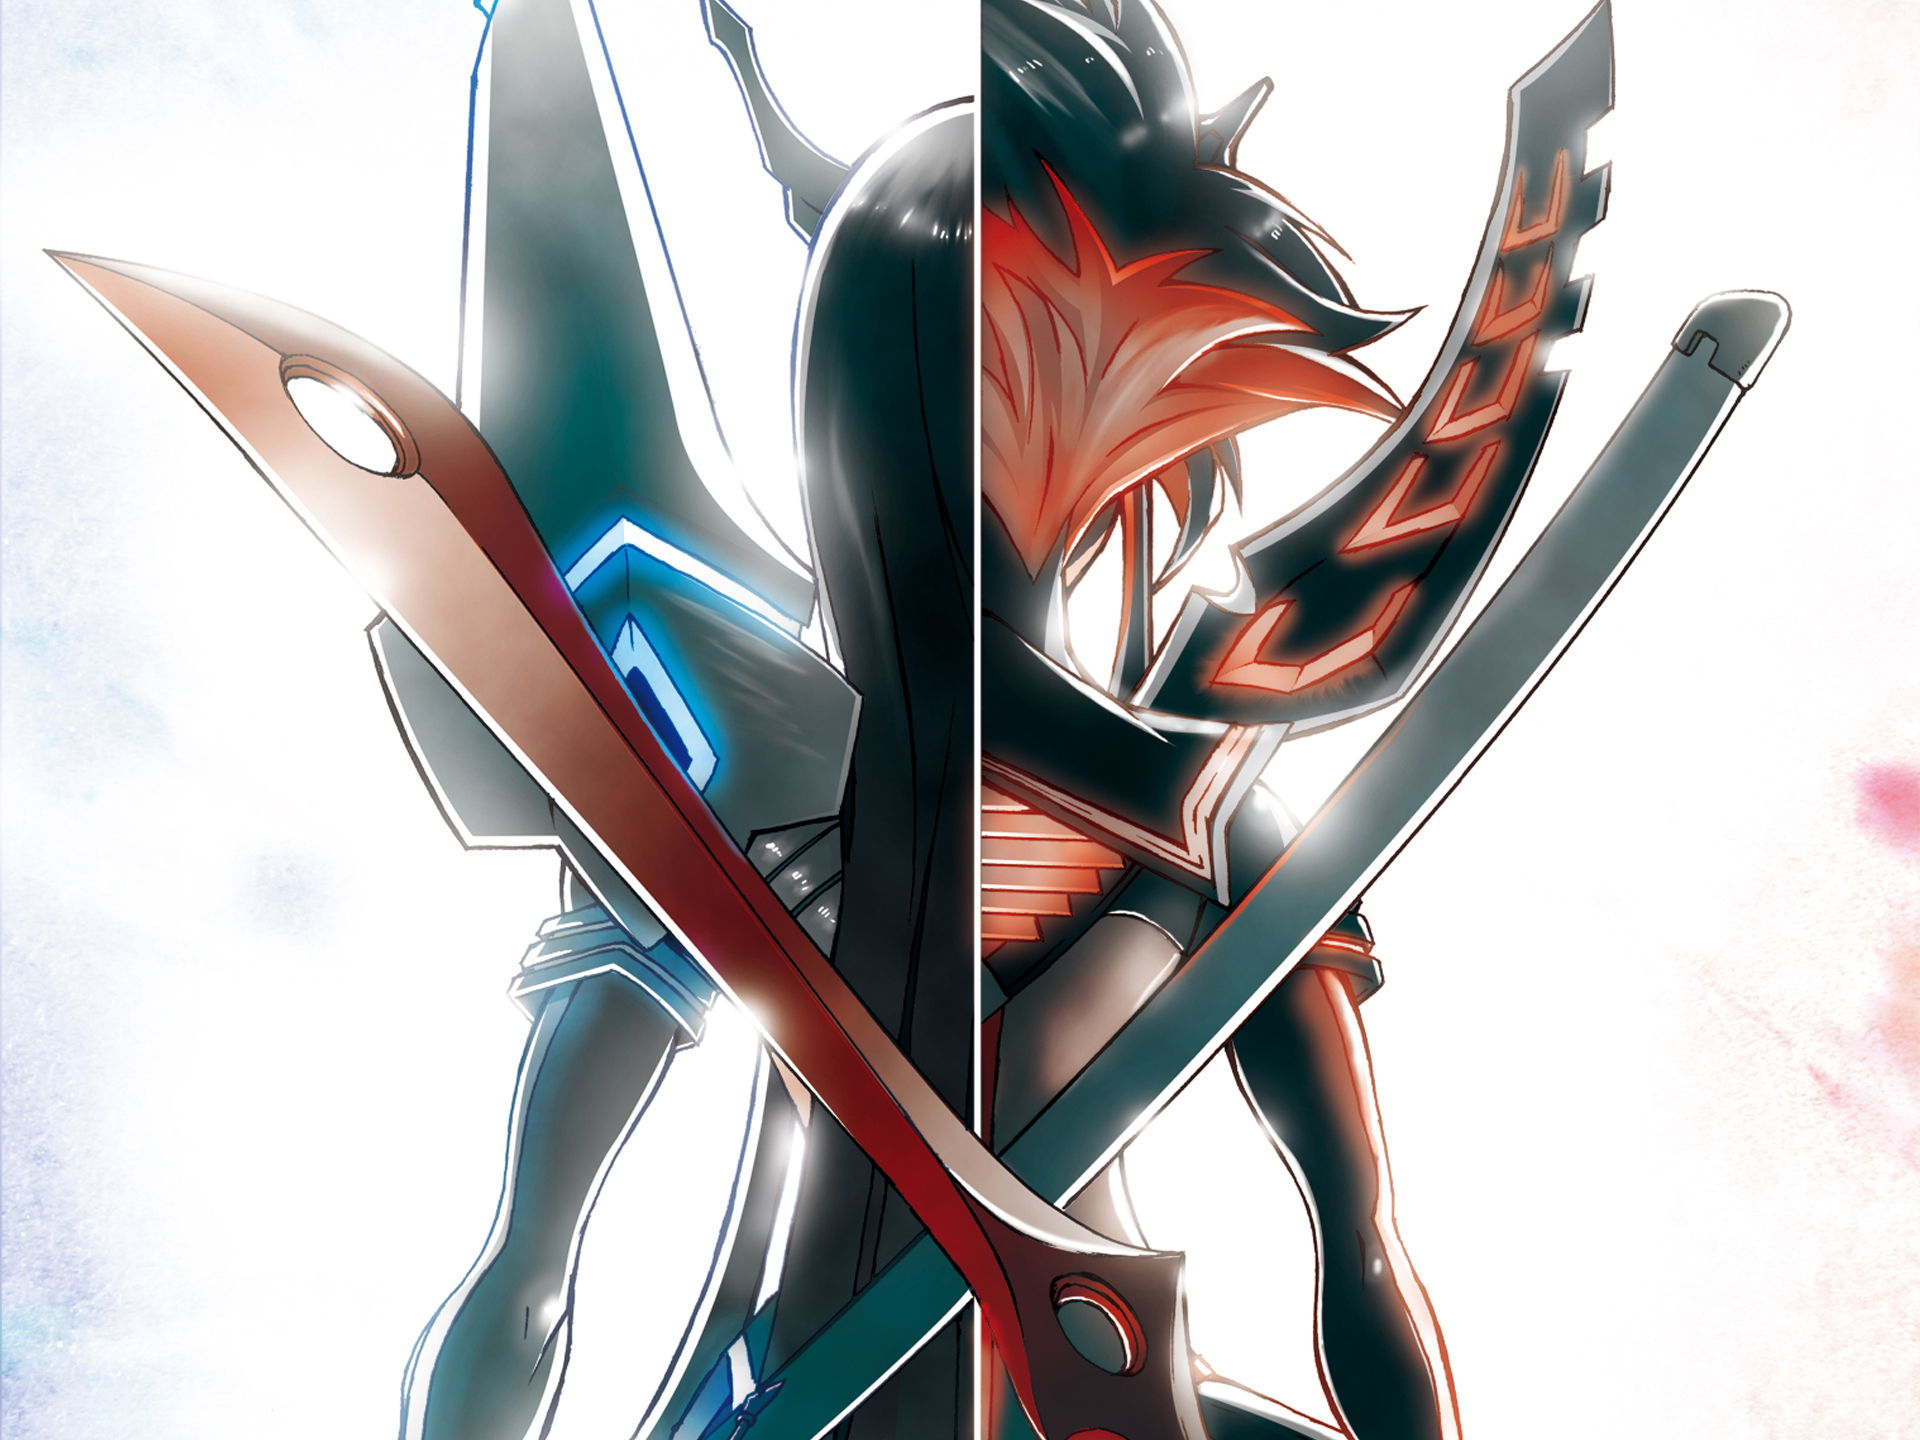 kill la kill girl anime hd wallpaper image picture 1440x900 6f 1920x1440